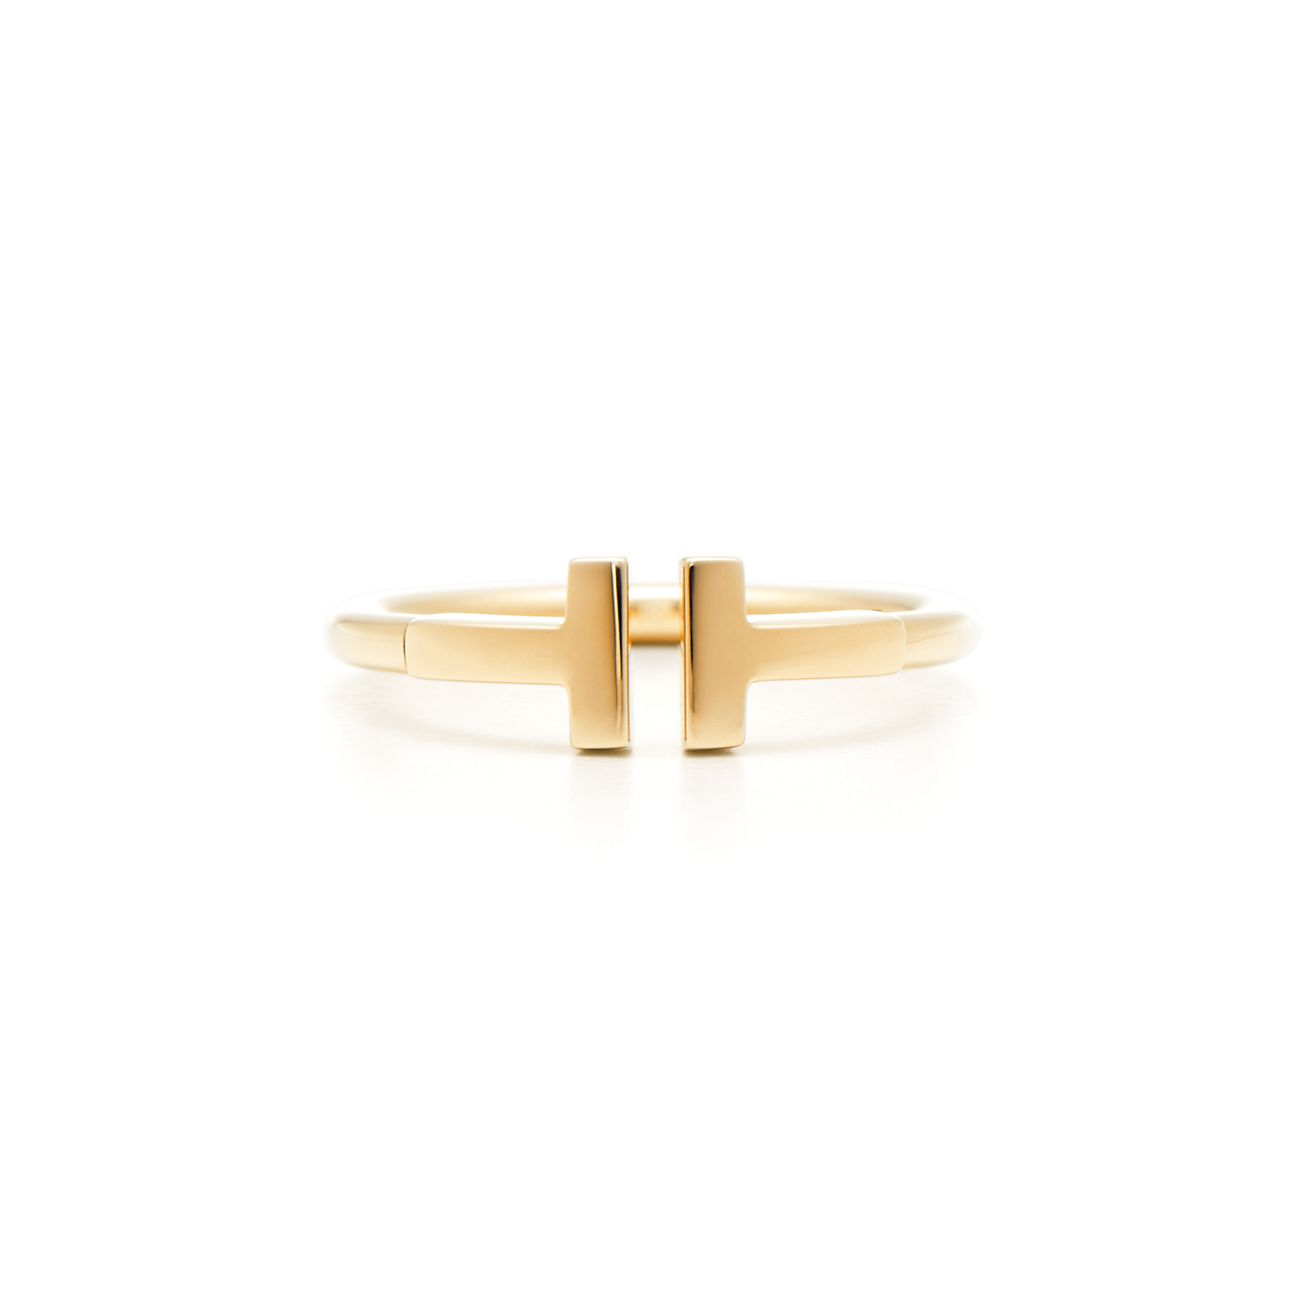 Tiffany T square ring in 18k rose gold - Size 4 1/2 Tiffany & Co.